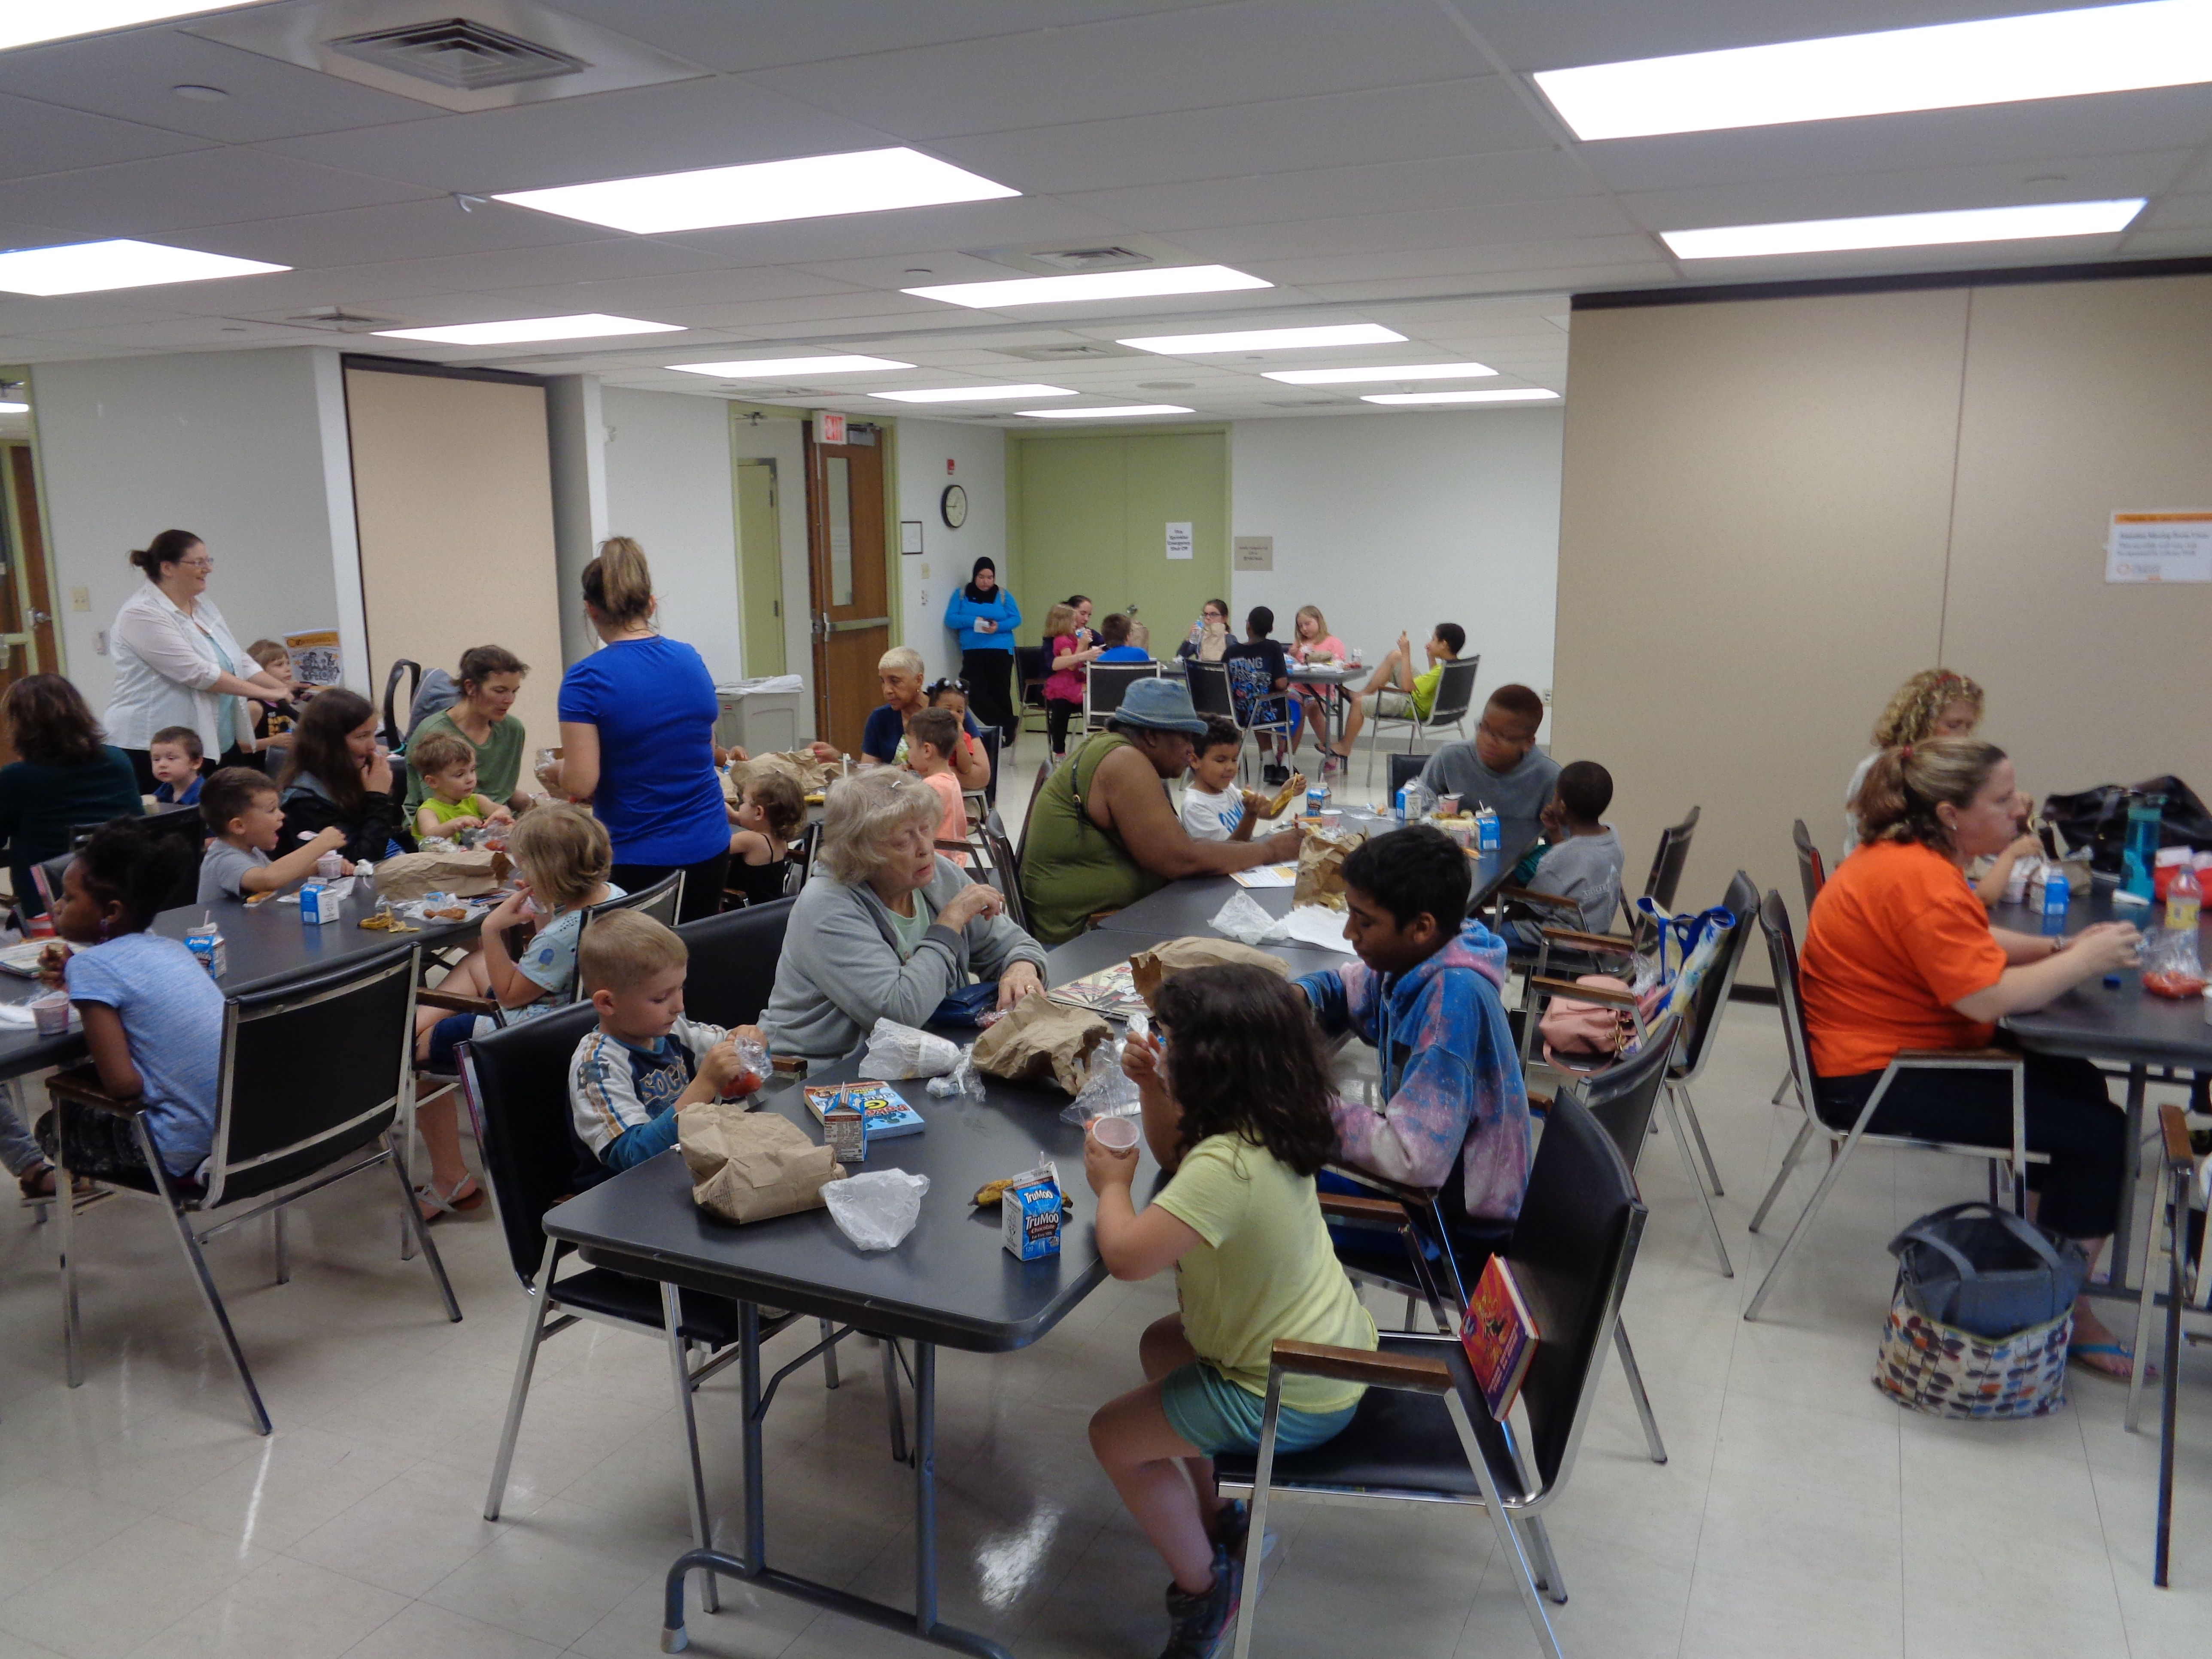 We Had An Amazing Turnout For Our Lunch At Thelibrary Program At The East Shore Area Library Last Wednesday June 13 Technical Schools Library Dauphin County